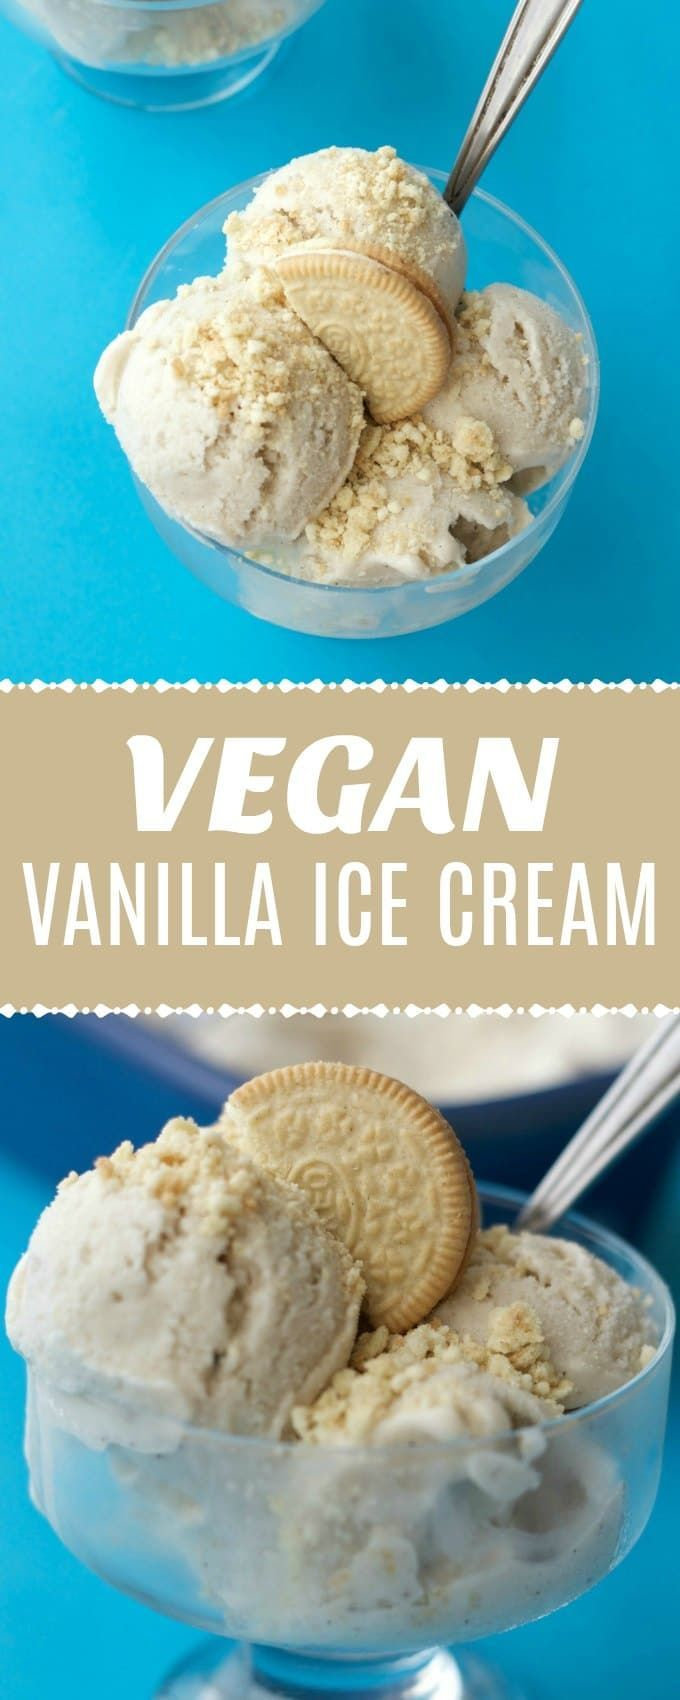 Ultra creamy vegan vanilla ice cream. So easy to make with the most perfectly smooth, rich, melt-in-the-mouth ice cream texture. | lovingitvegan.com #healthyicecream